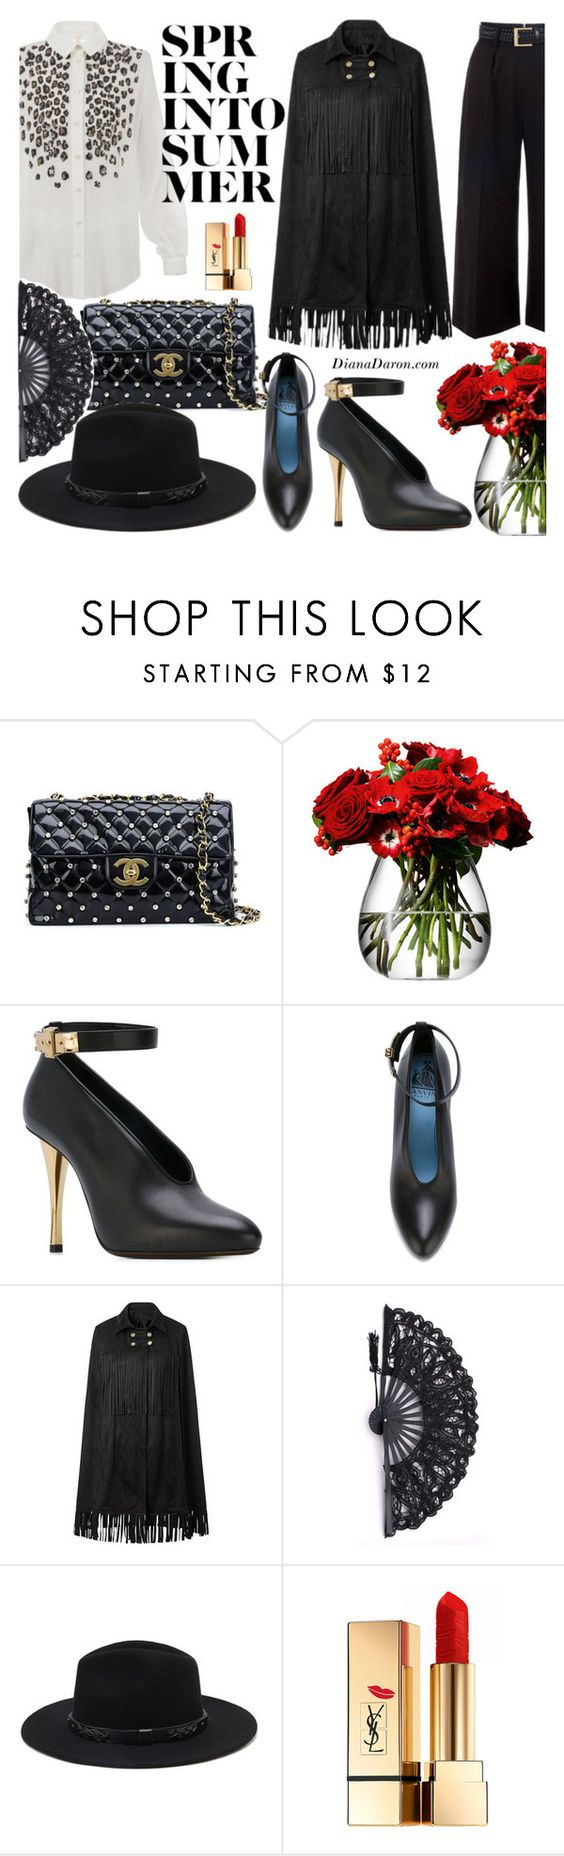 """""""Summer in Spain"""" by dianadaron ❤ liked on Polyvore featuring Chanel, LSA International, Lanvin, Forever 21 and Yves Saint Laurent"""